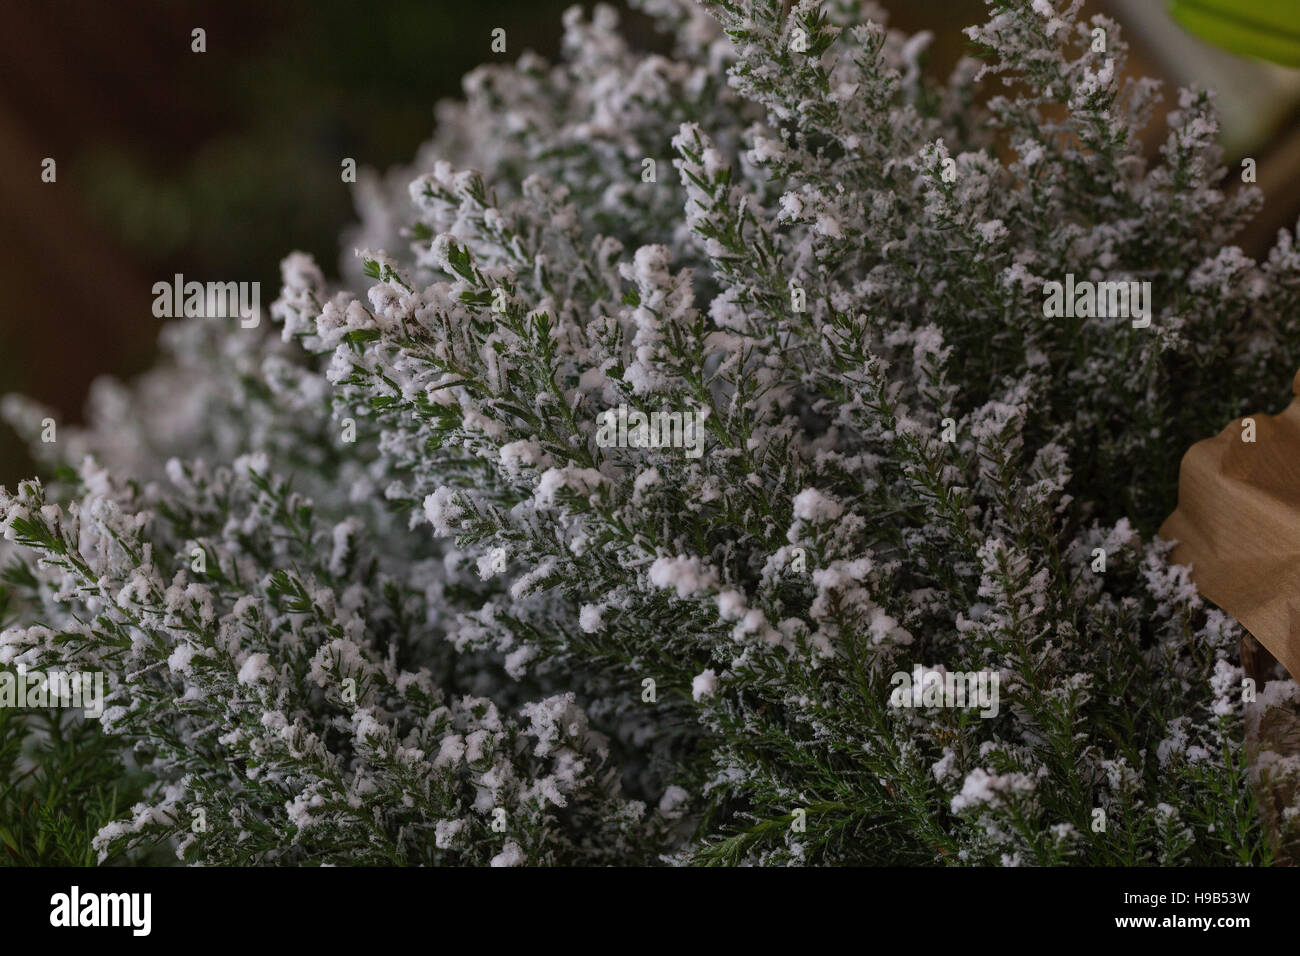 Snow frost tipped calluna heather winter foliage for decoration or planting - Stock Image